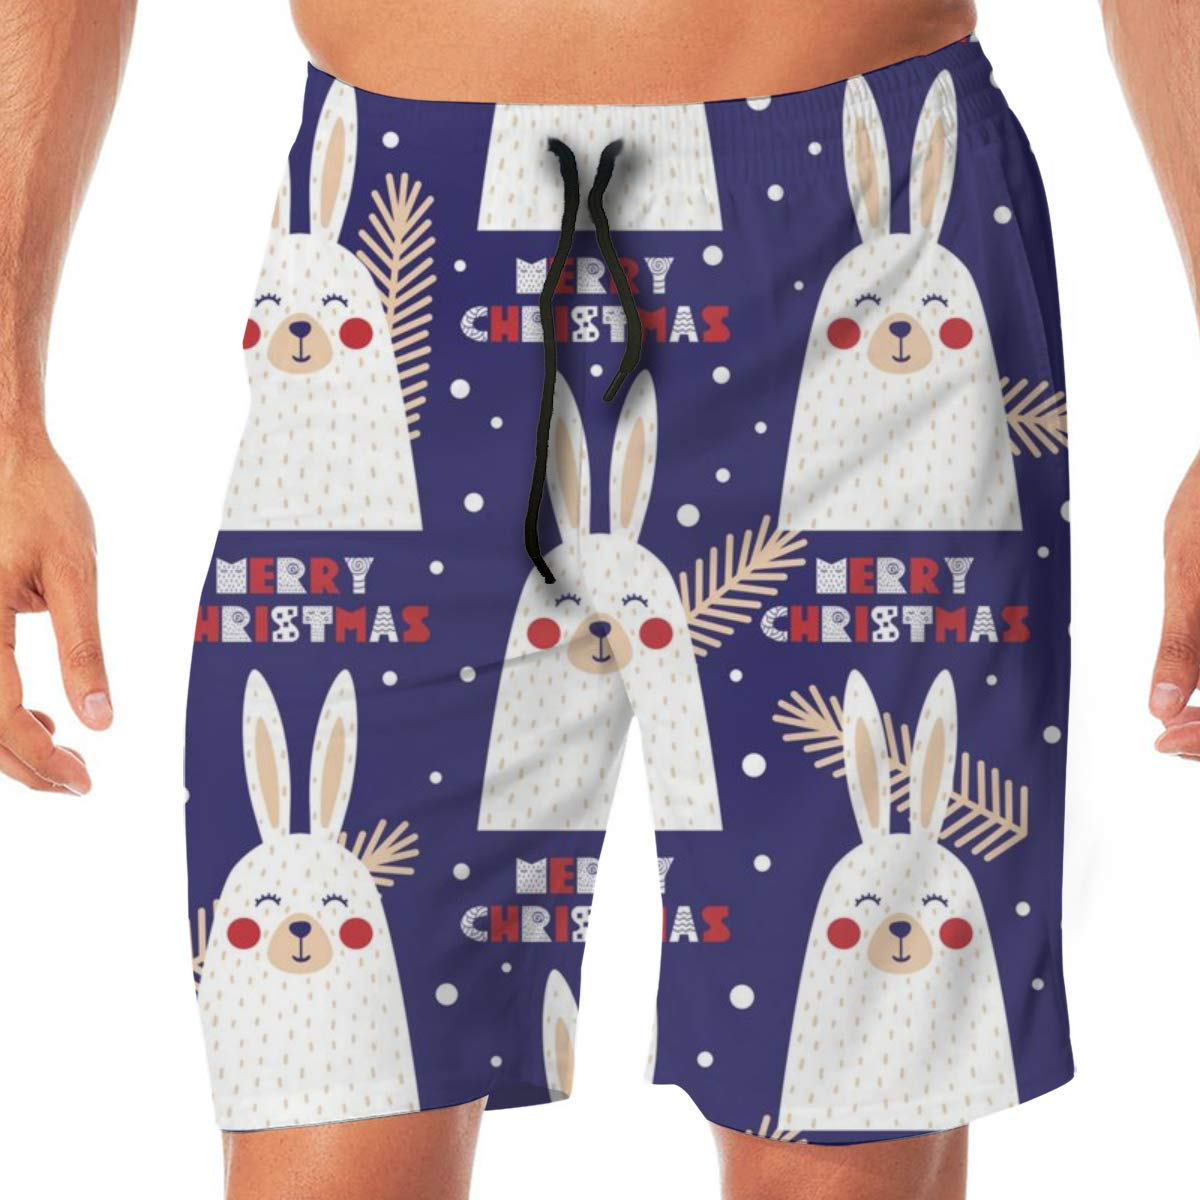 TR2YU7YT Christmas Rabbit Casual Mens Swim Trunks Quick Dry Printed Beach Shorts Summer Boardshorts Bathing Suits with Drawstring